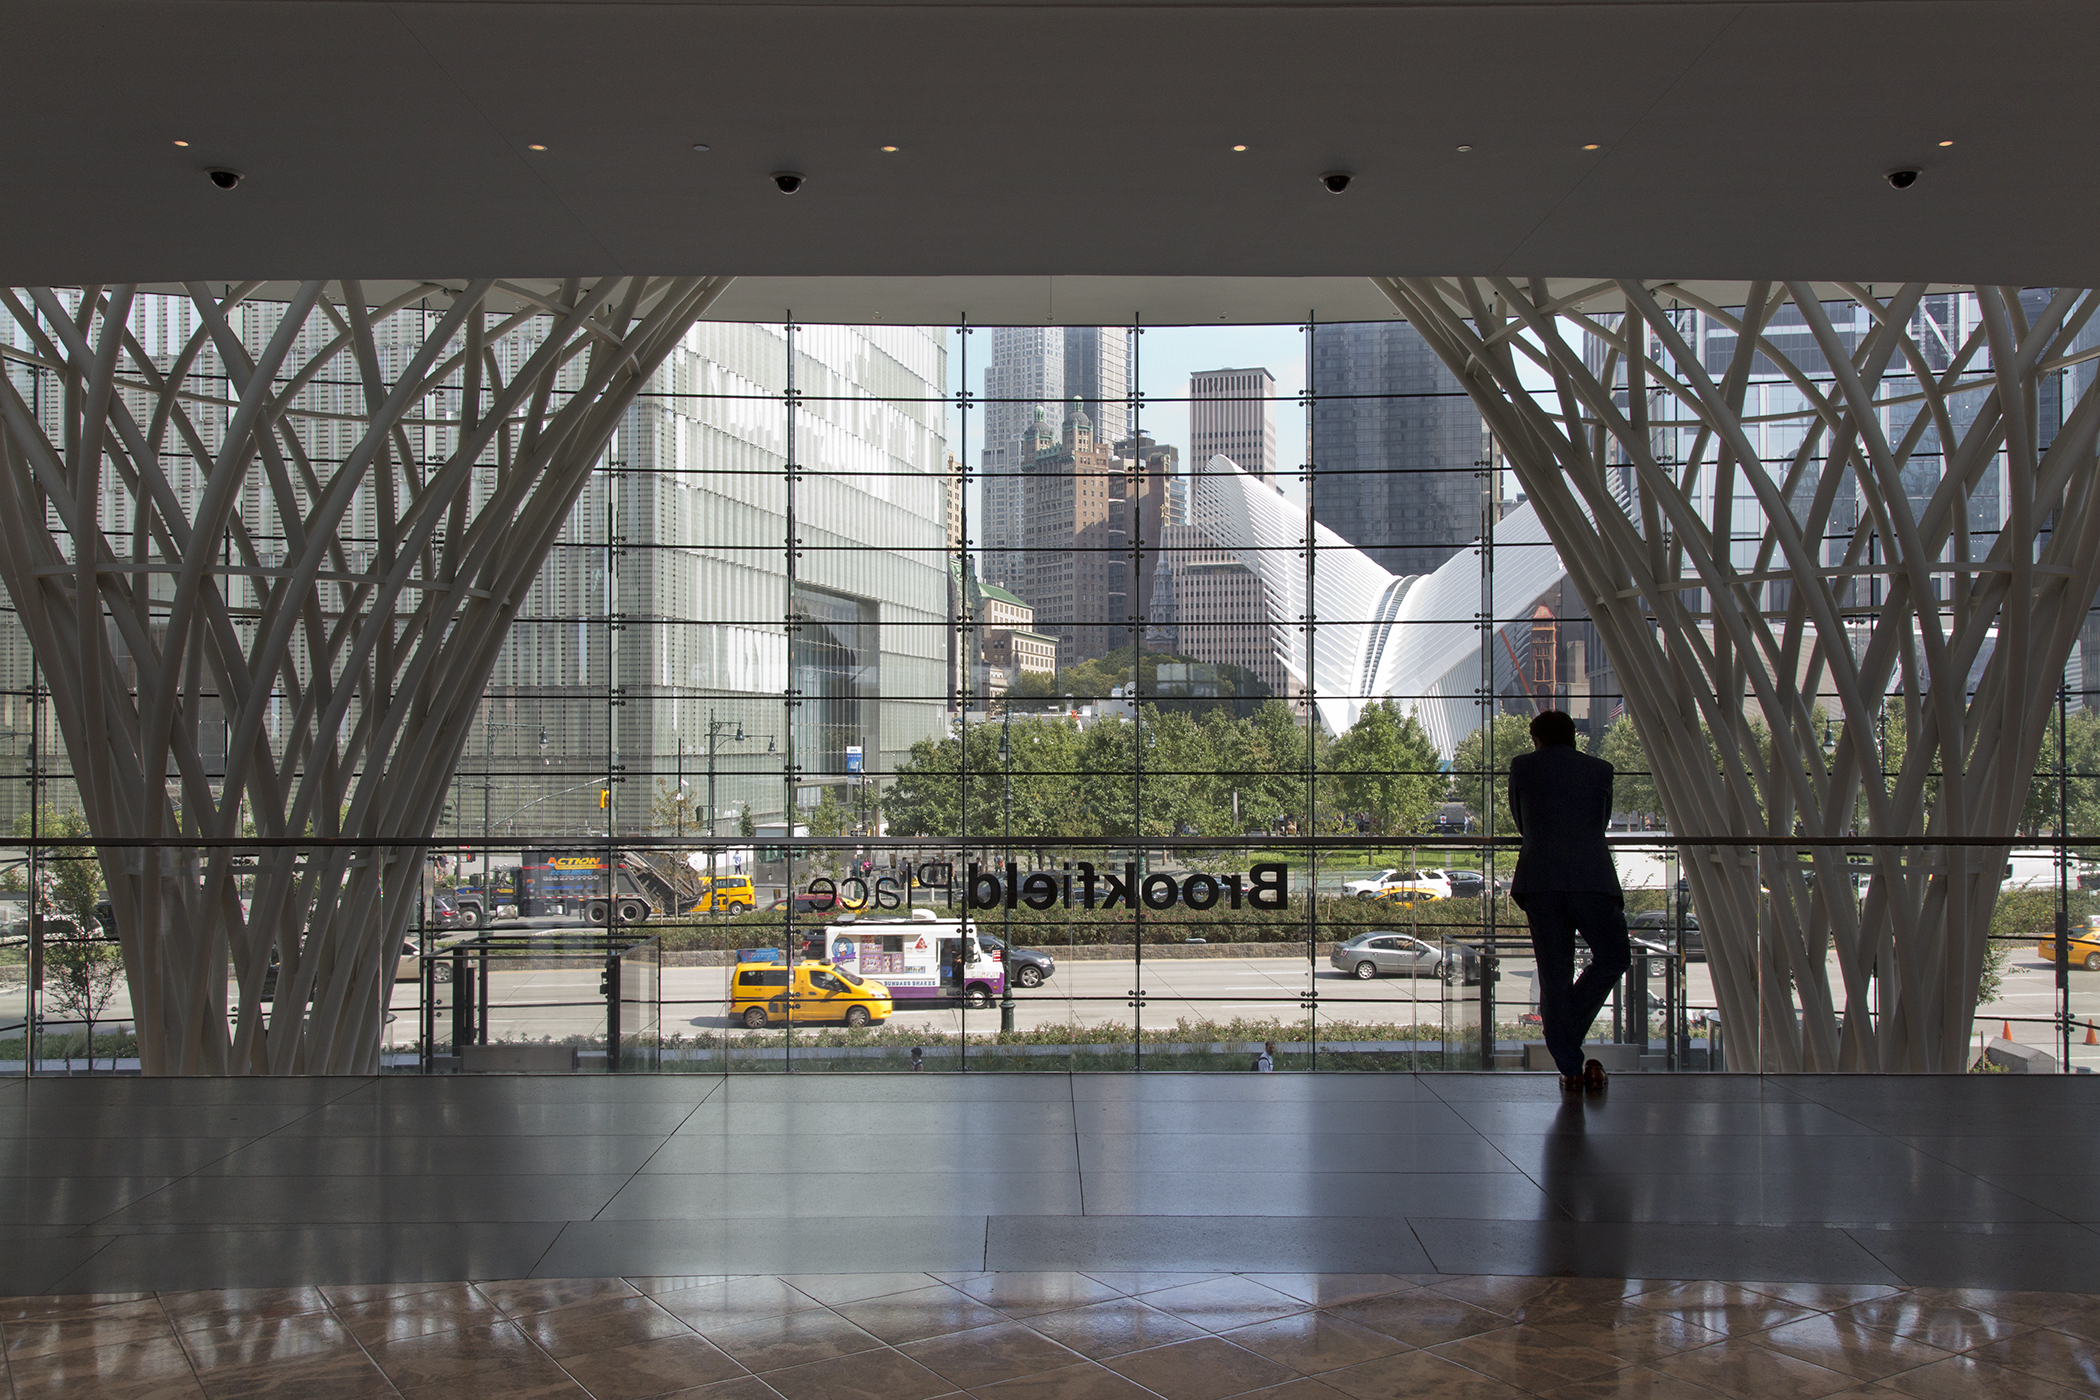 The view of 1 WTC and Santiago Calatrava's transportation hub from Brookfield Place, New York.